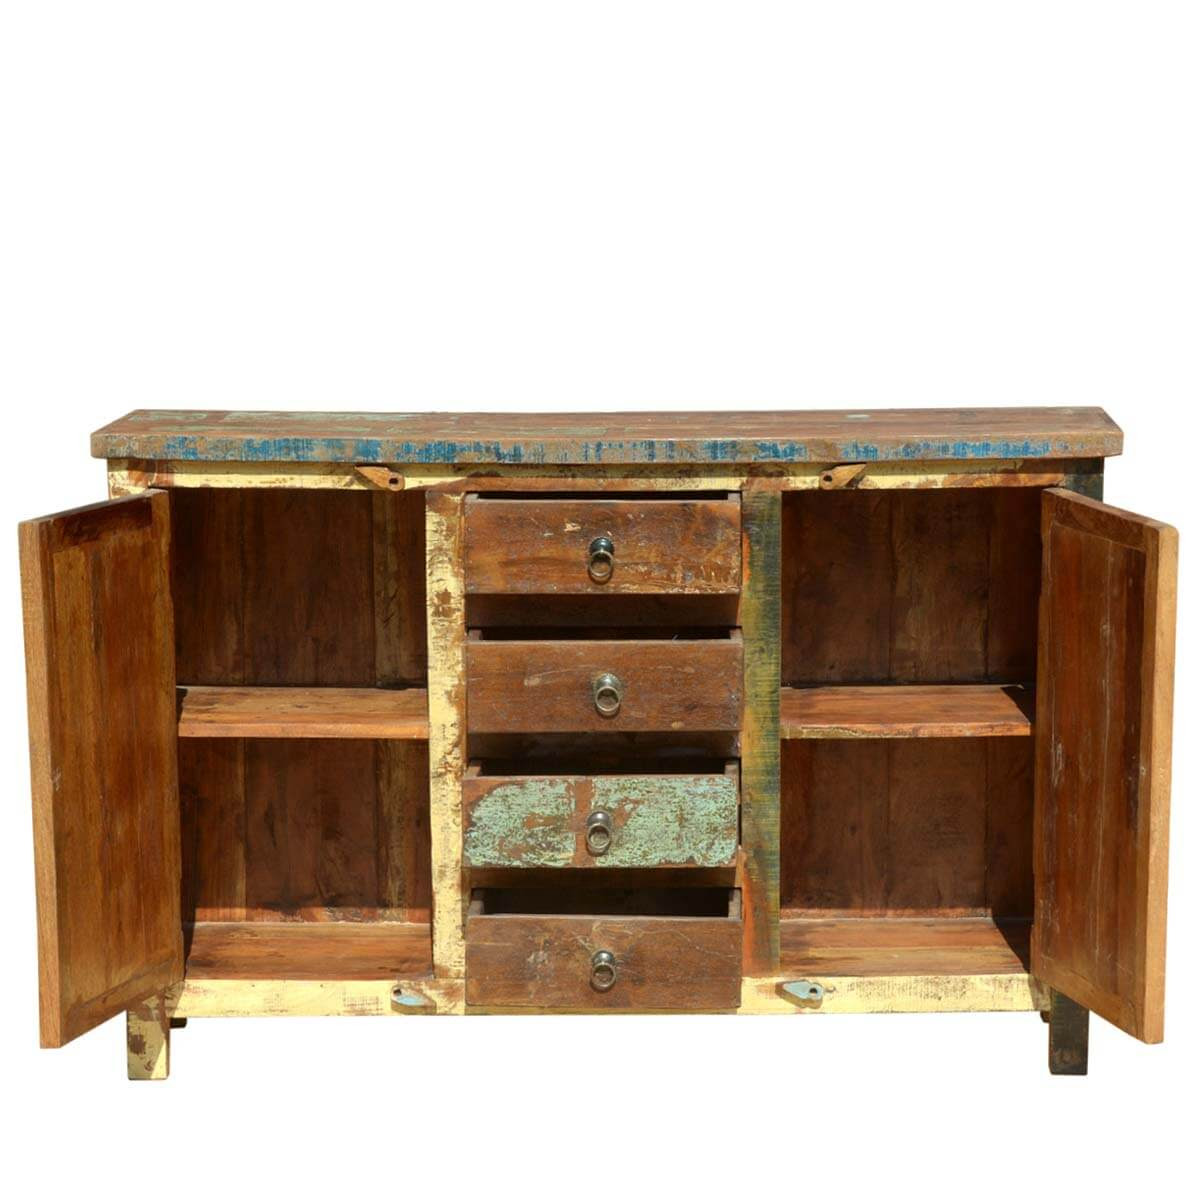 Reclaimed Wooden Mosaic Rustic Sideboard Buffet Cabinet